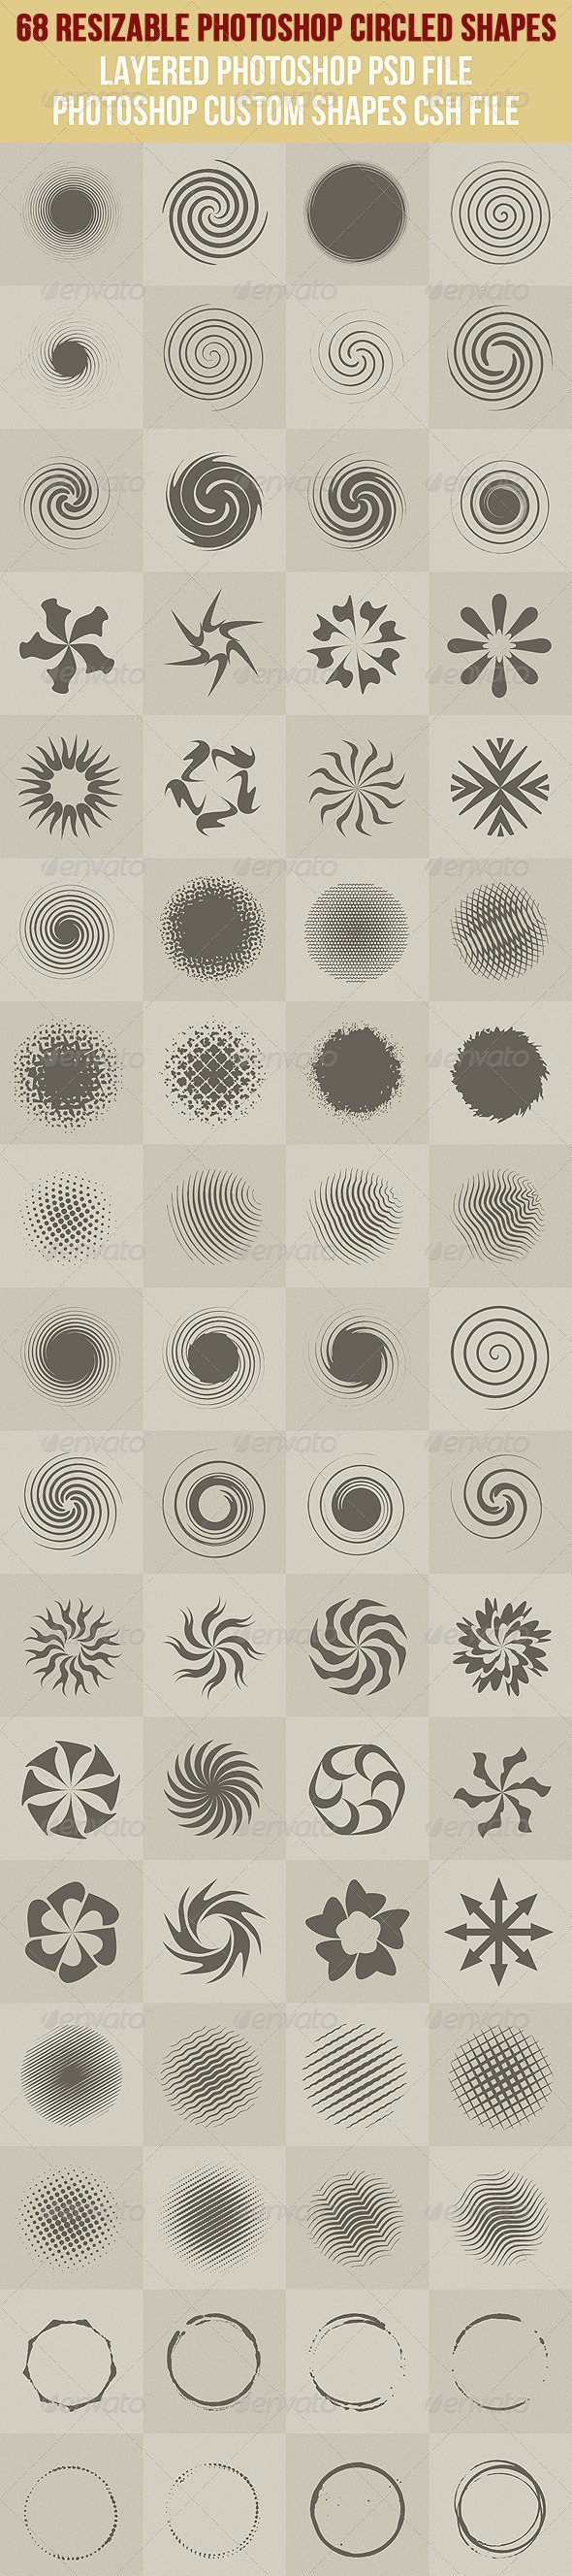 GraphicRiver 68 Photoshop Circled Shapes 1 2600079